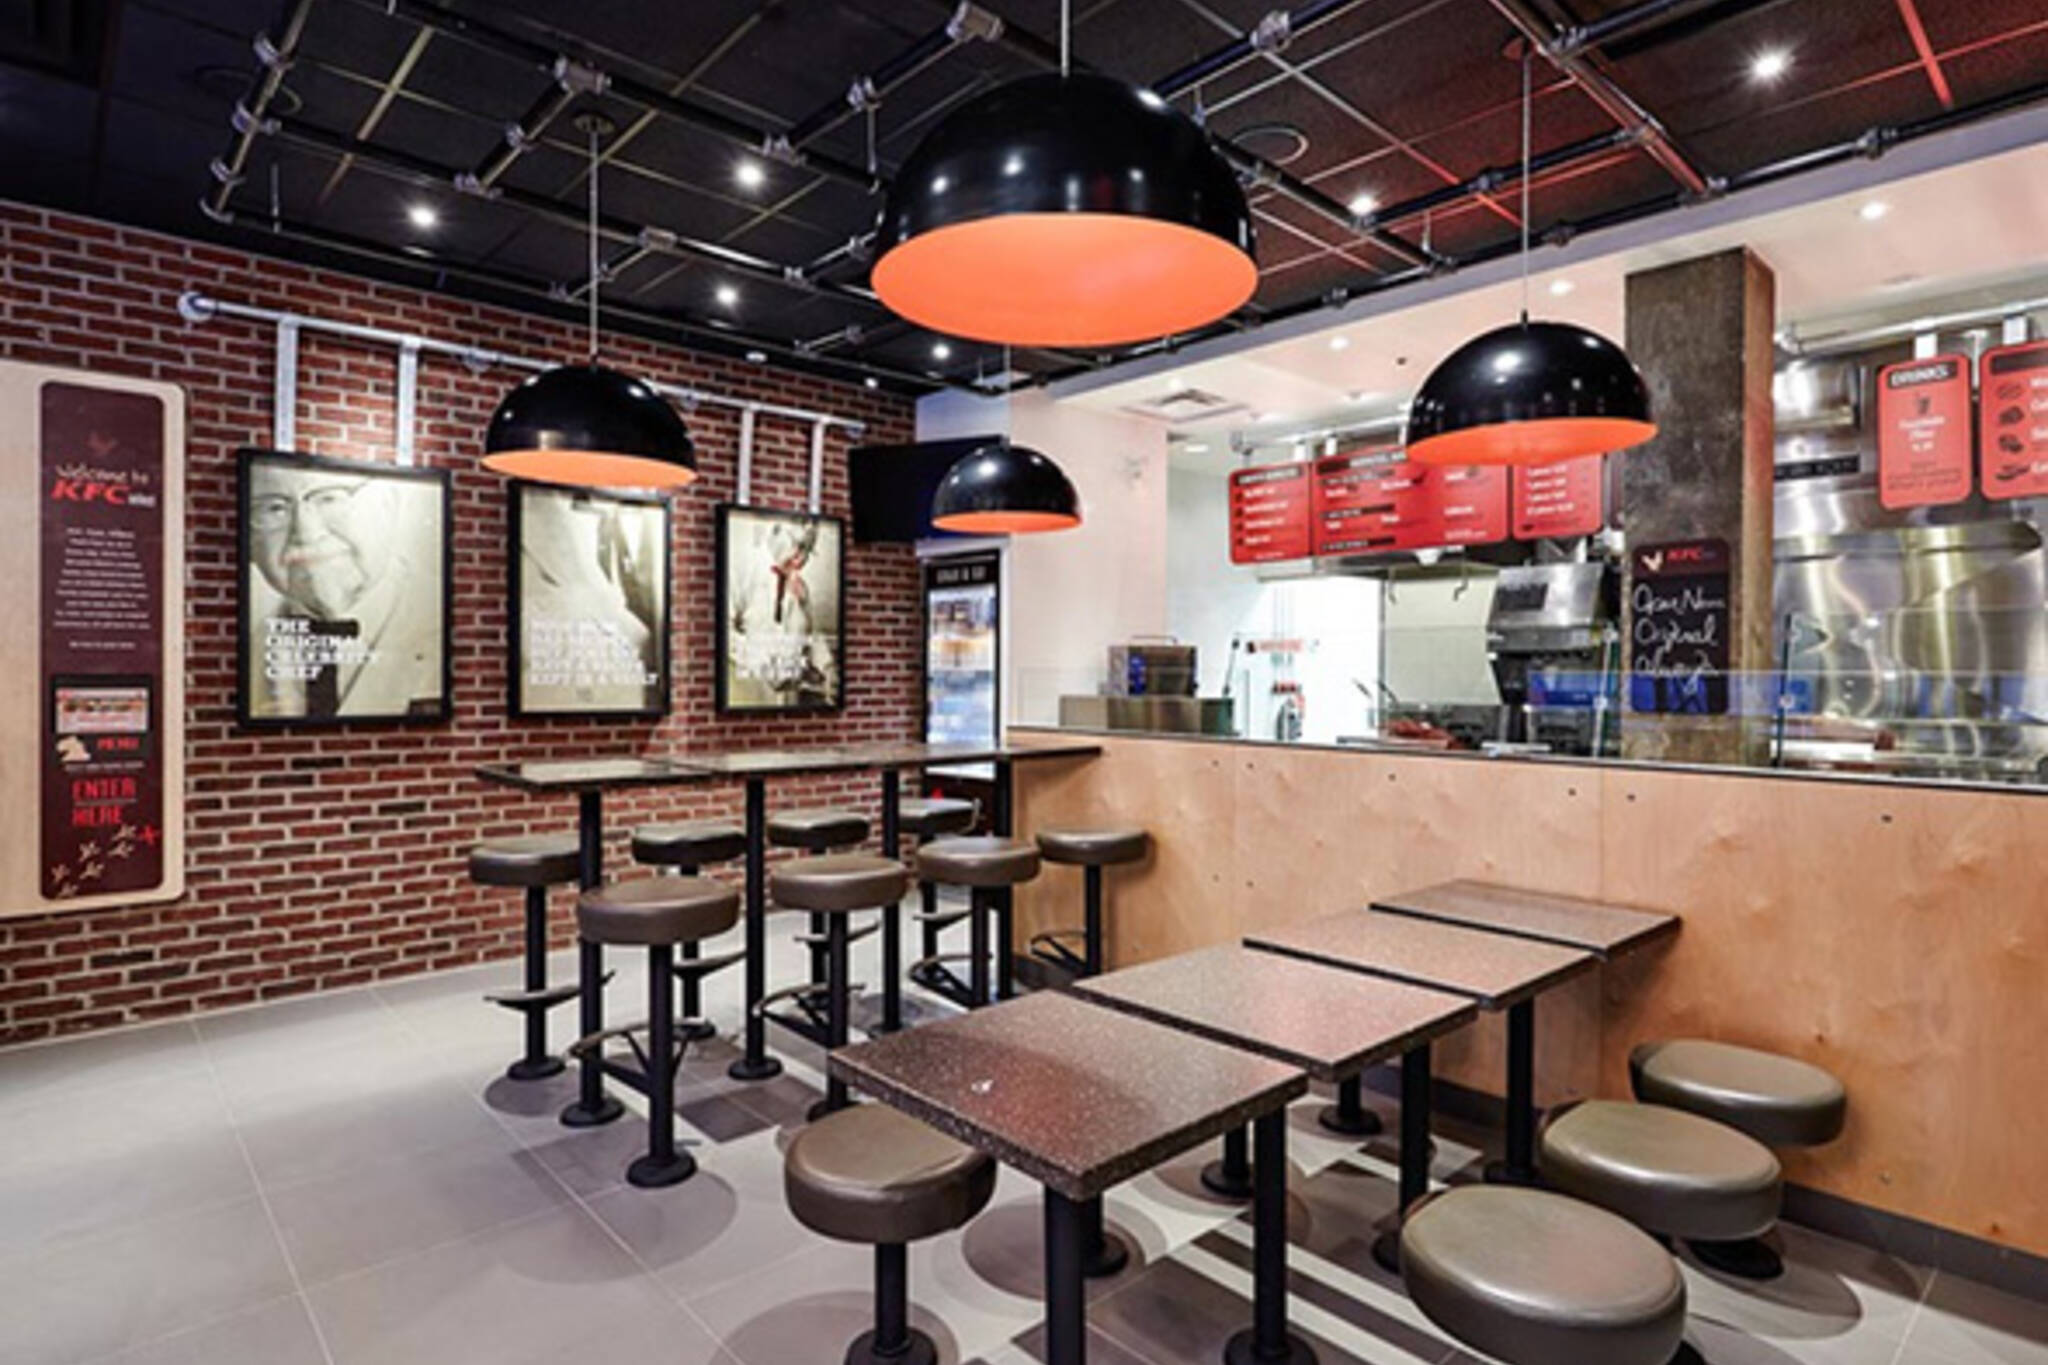 Kfc to sell beer at two revamped toronto locations